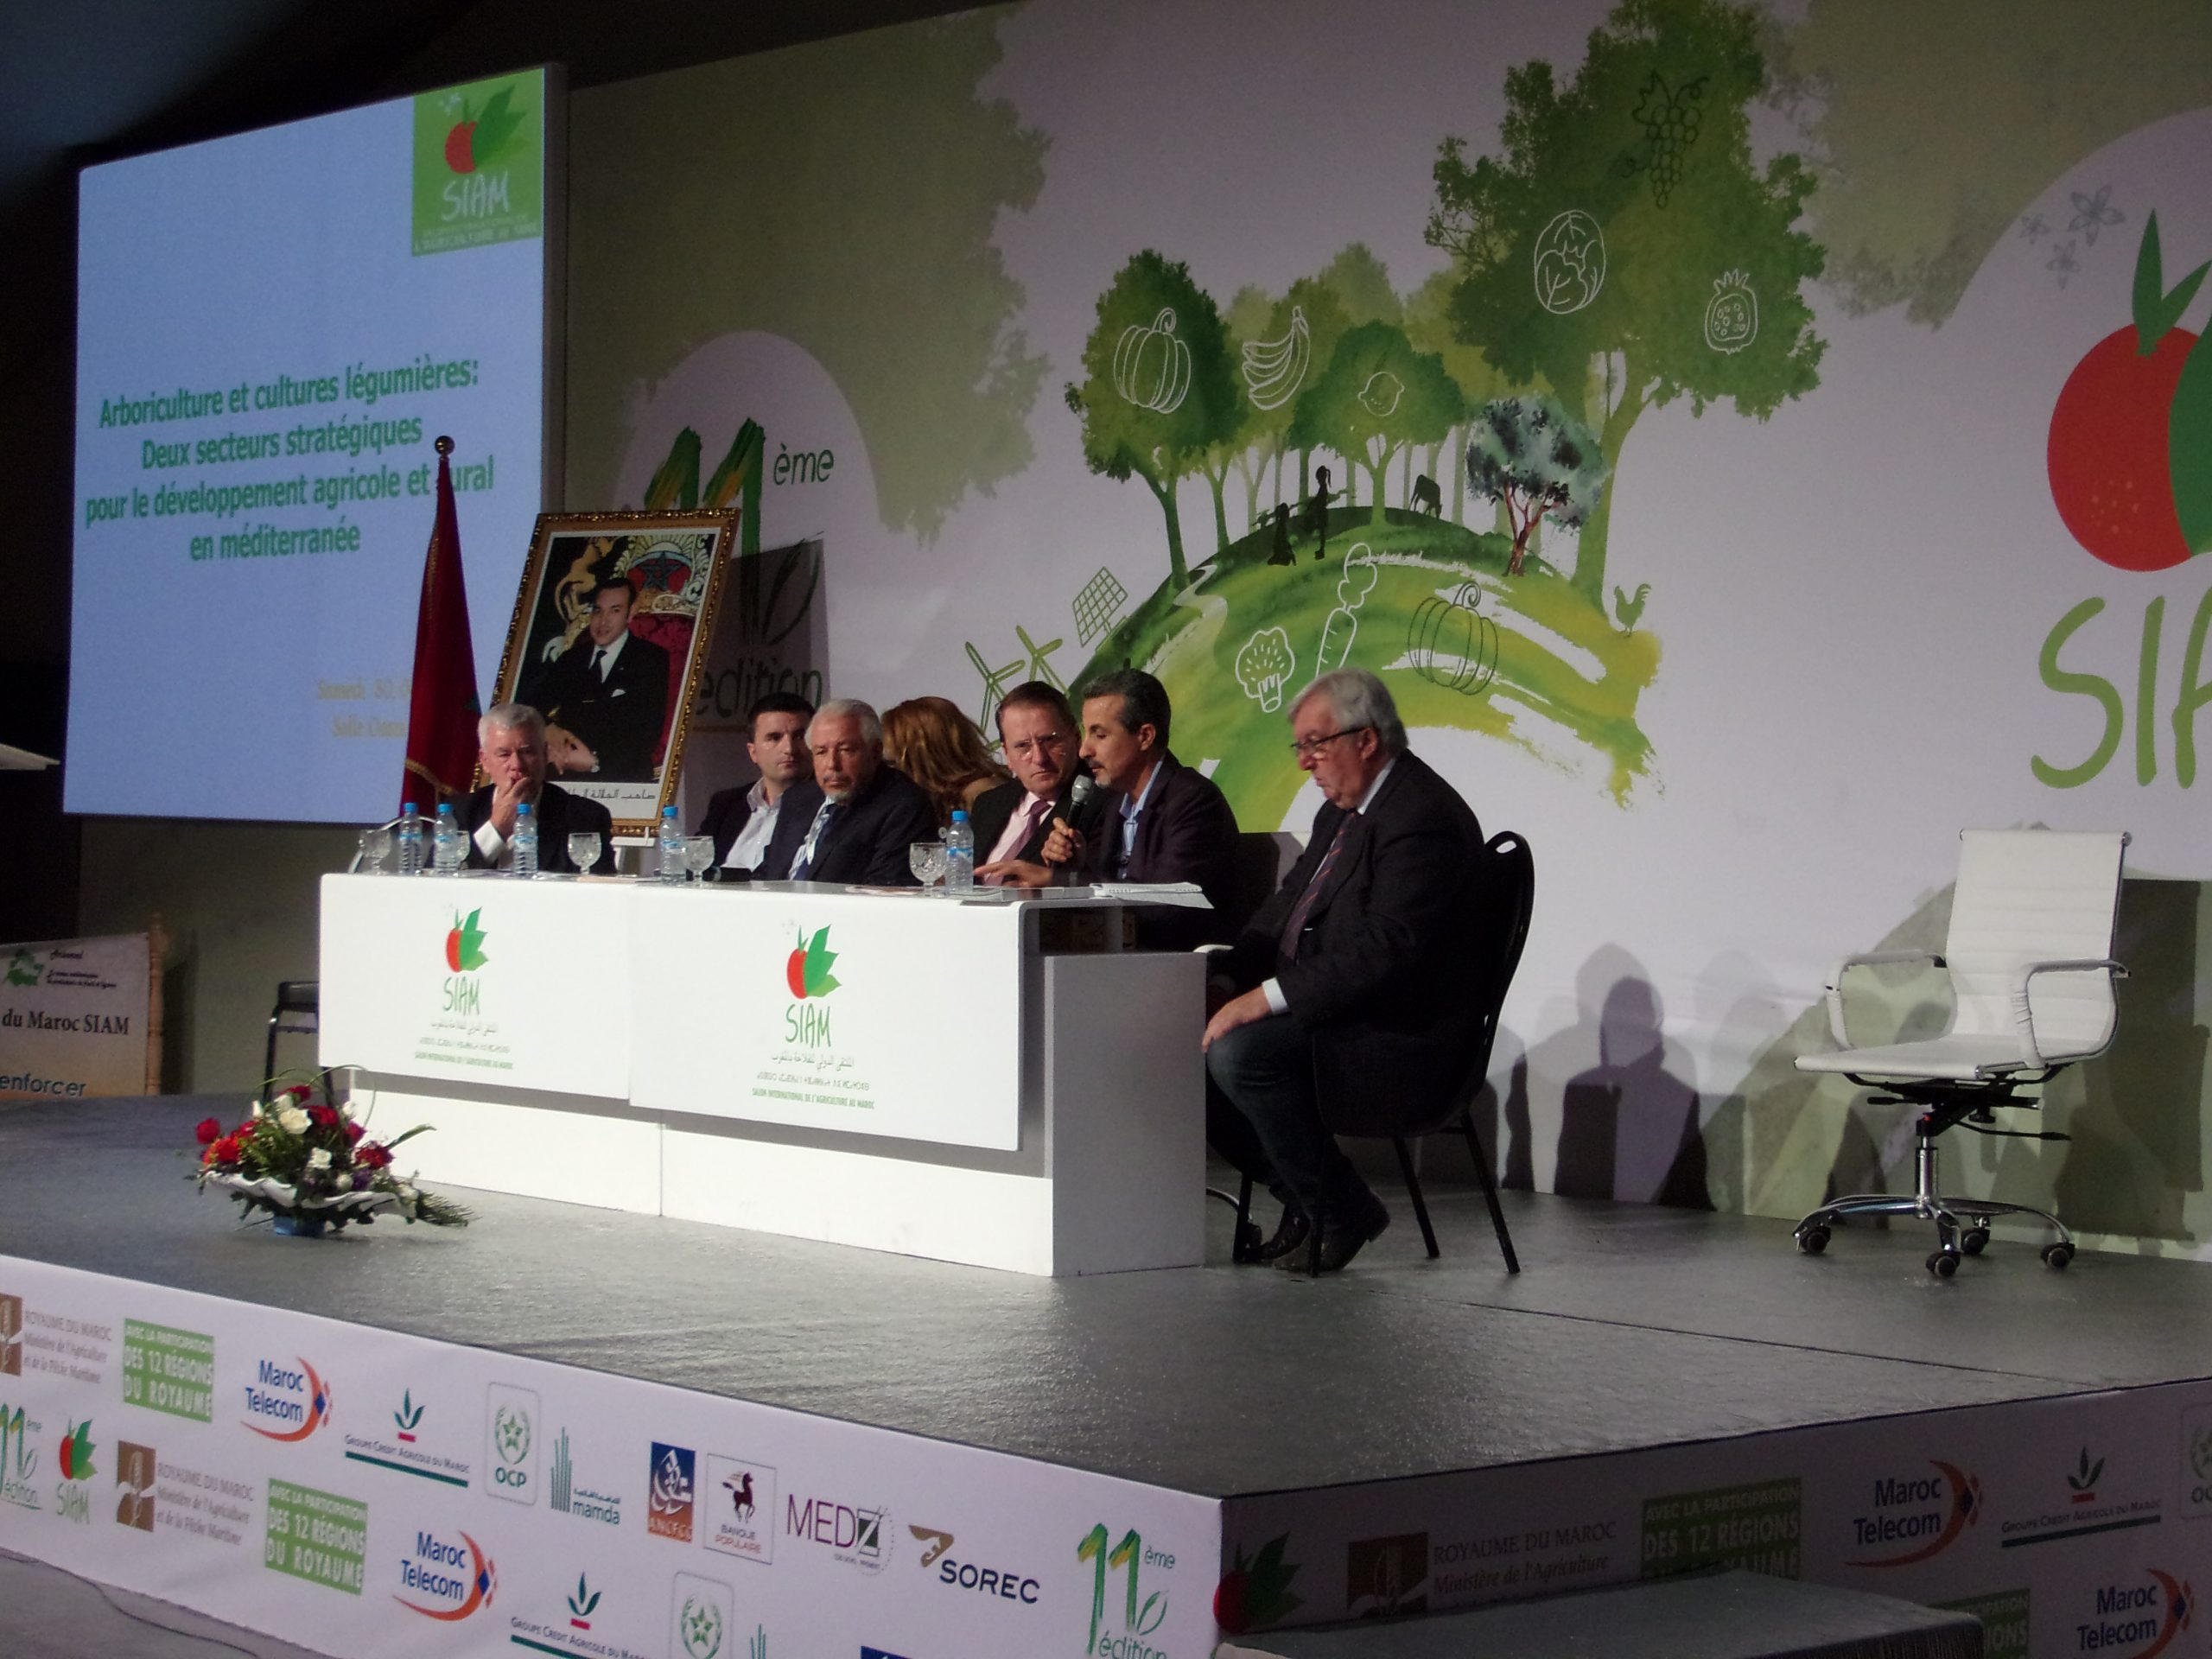 """As part of the 11th SIAM (Salon International de l'Agriculture au Maroc) in Meknes this year, the network Arbomed held a symposium on the theme """"An observatory of production and markets, a key to strengthening the strategic sectors of fruit and vegetables in the Mediterranean """"."""